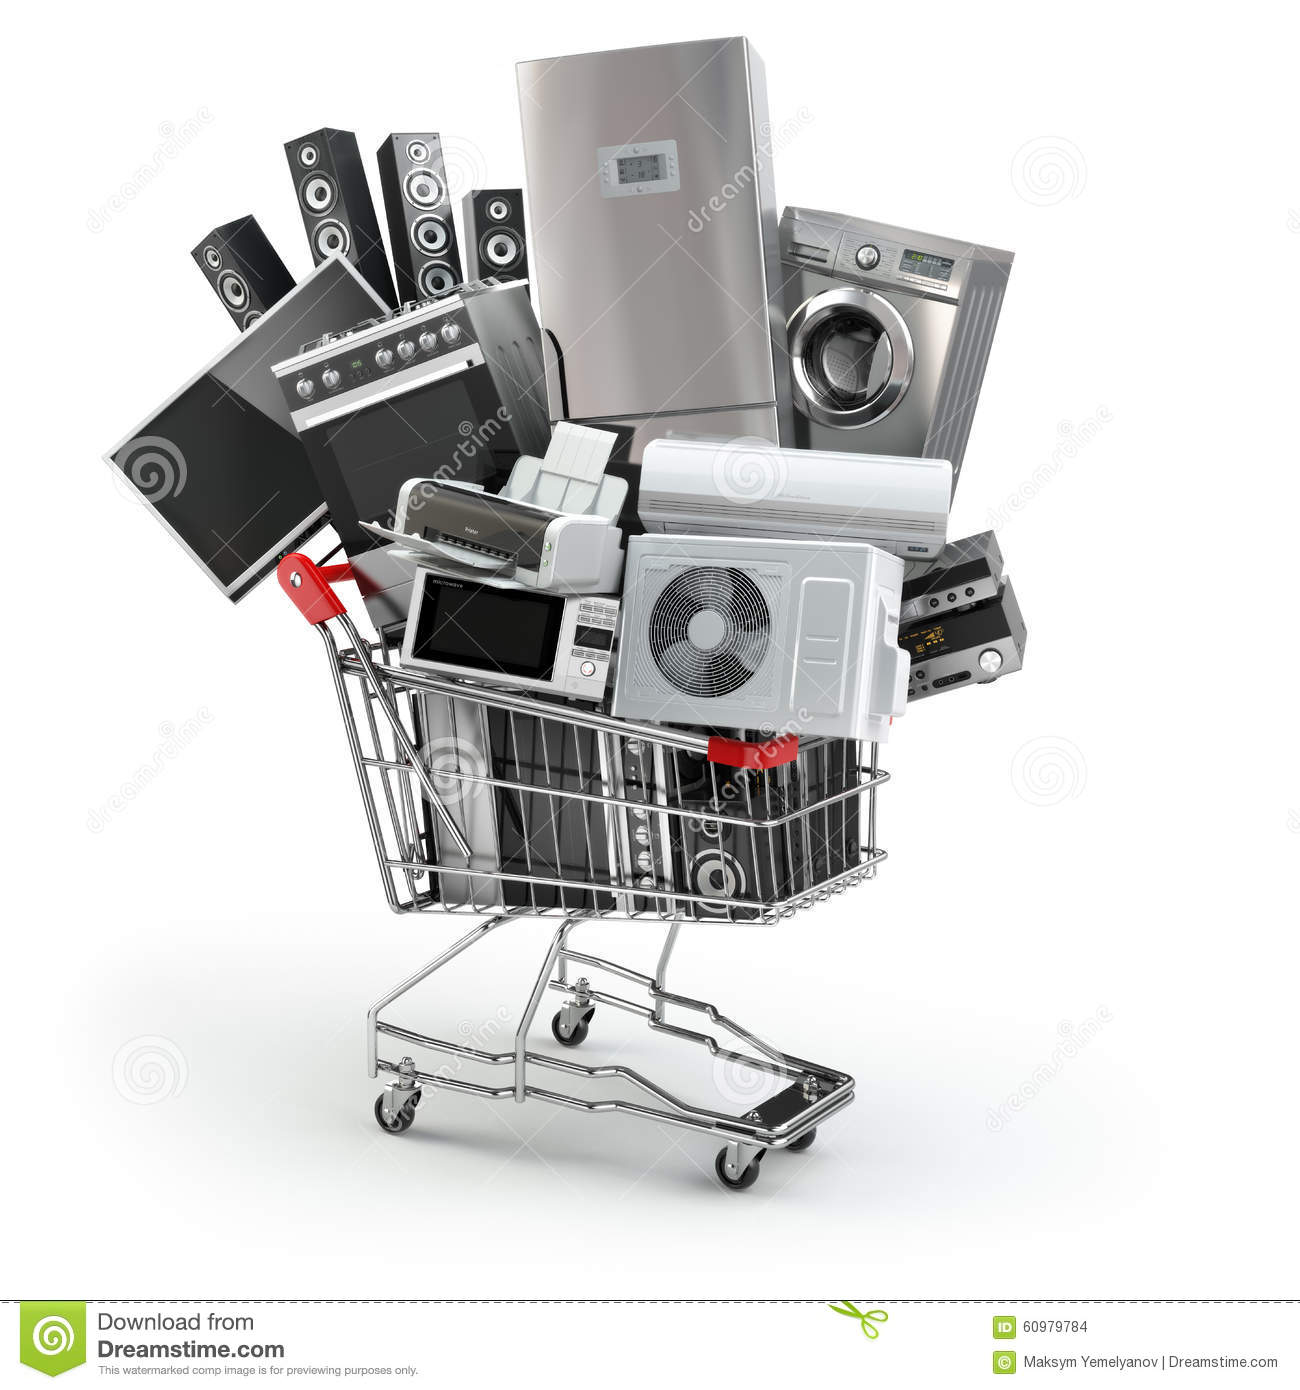 Household Stores: Home Appliances In The Shopping Cart. E-commerce Or Online